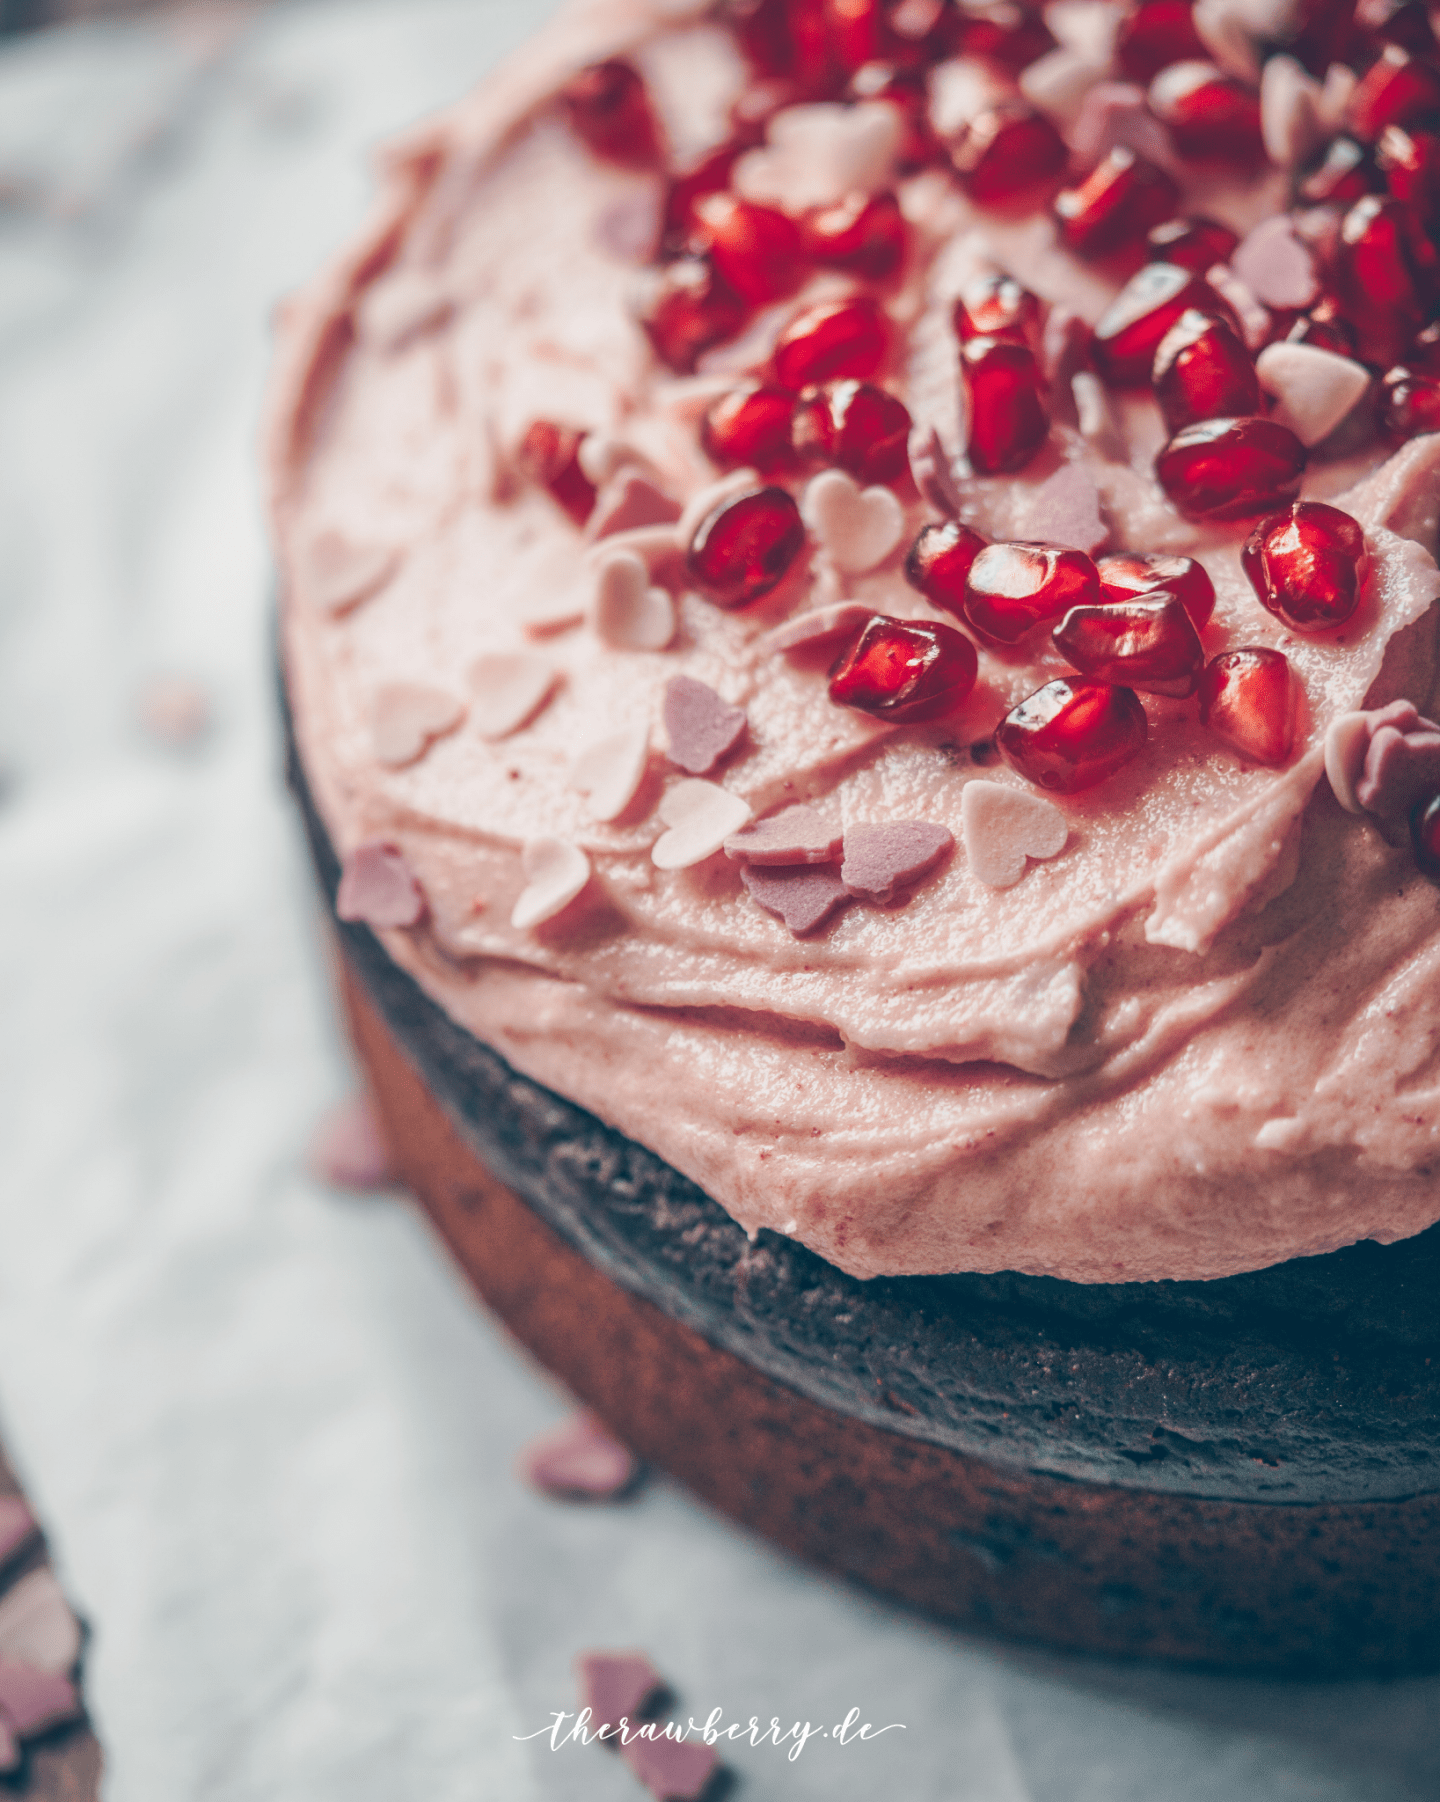 therawberry, chocolate, schokolade, gesund, healthy, lecker, delicious, einfach, simple, cake, kuchen, Valentine's Day, pomegranate, granatapfel, fluffy, luftig, vegan, kaka, cacao, cocoa, frosting, diet, no sugar, refined sugar free, Whole Foods, spelt, dinkel, dairy free, lactose frei, celebrations, fewer, birthday cake, geburtstagskuchen, torte, party